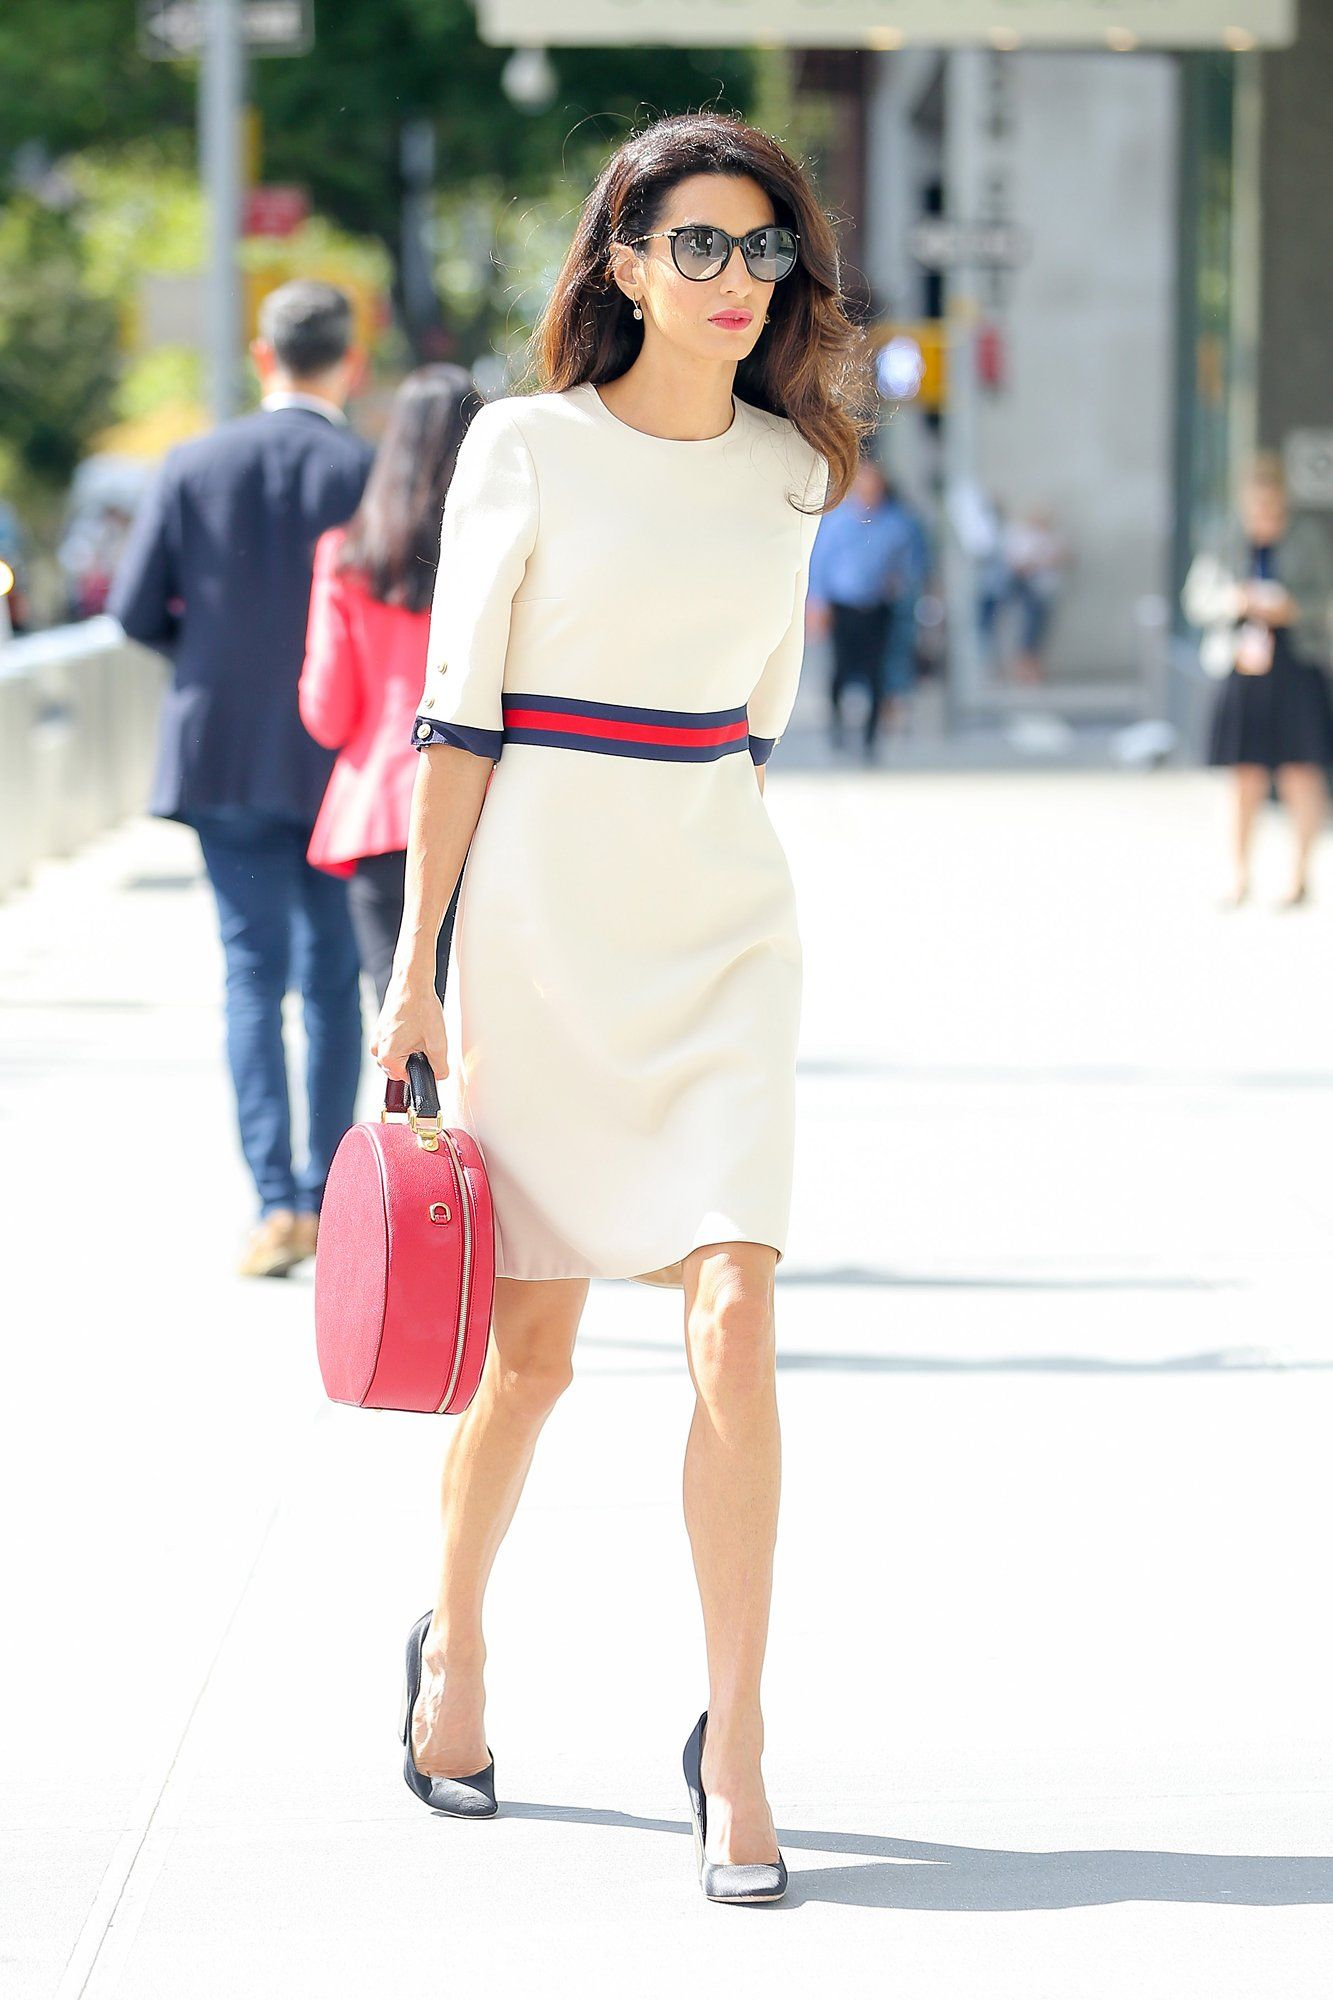 Gucci Dress Dolce Gabbana Bag Giambattista Valli Shoes September 16 2016